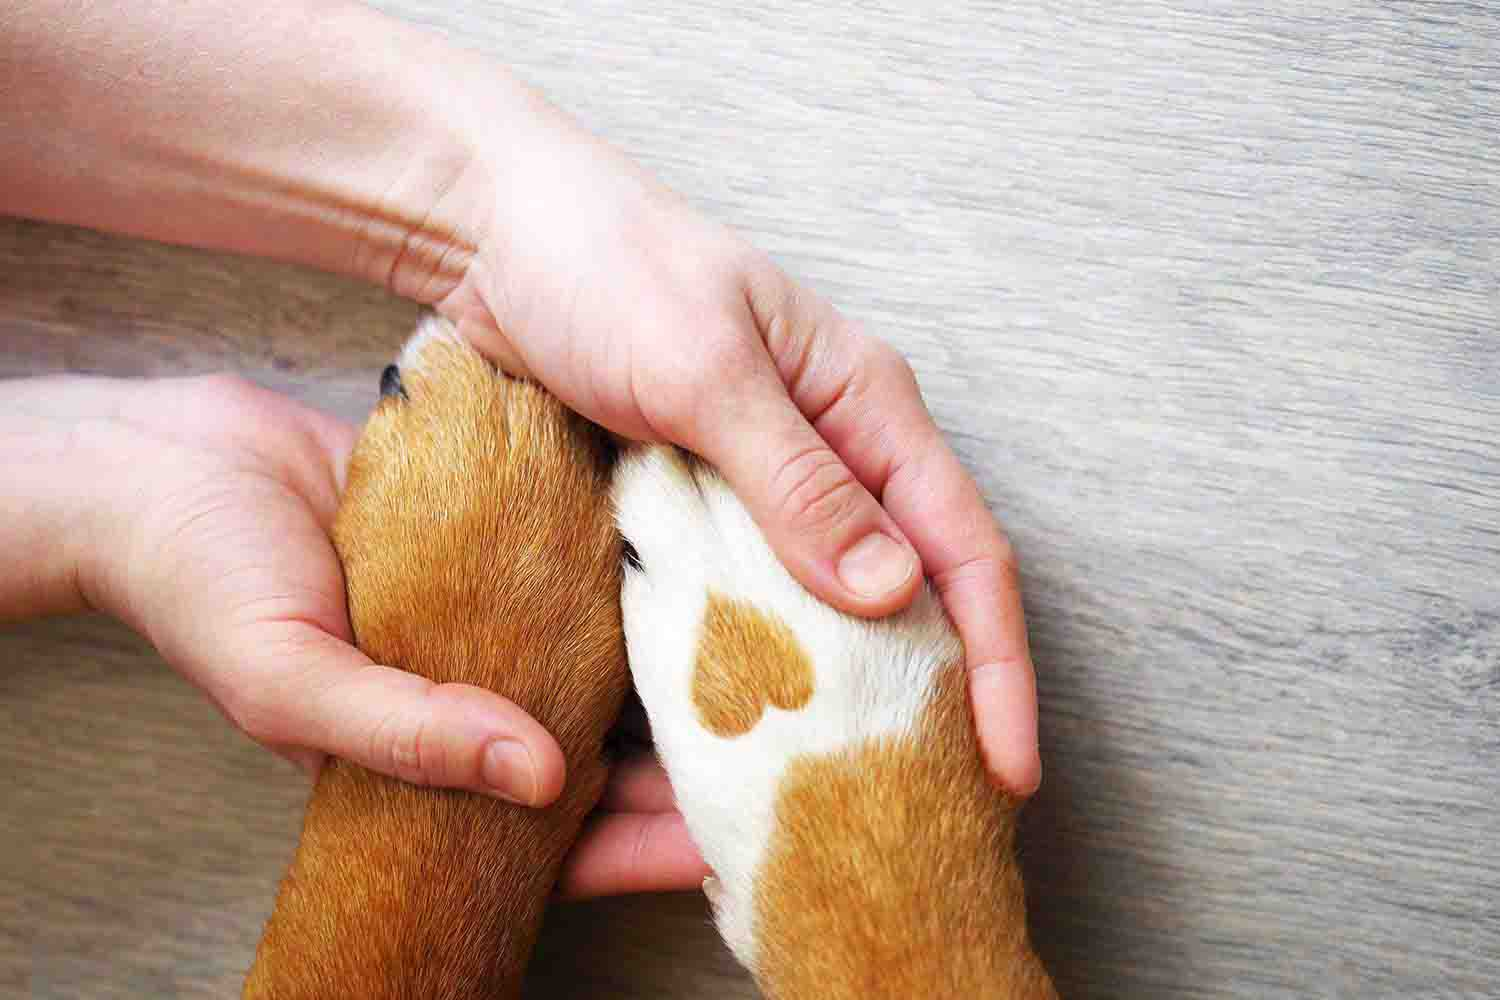 Vet Services for Dogs